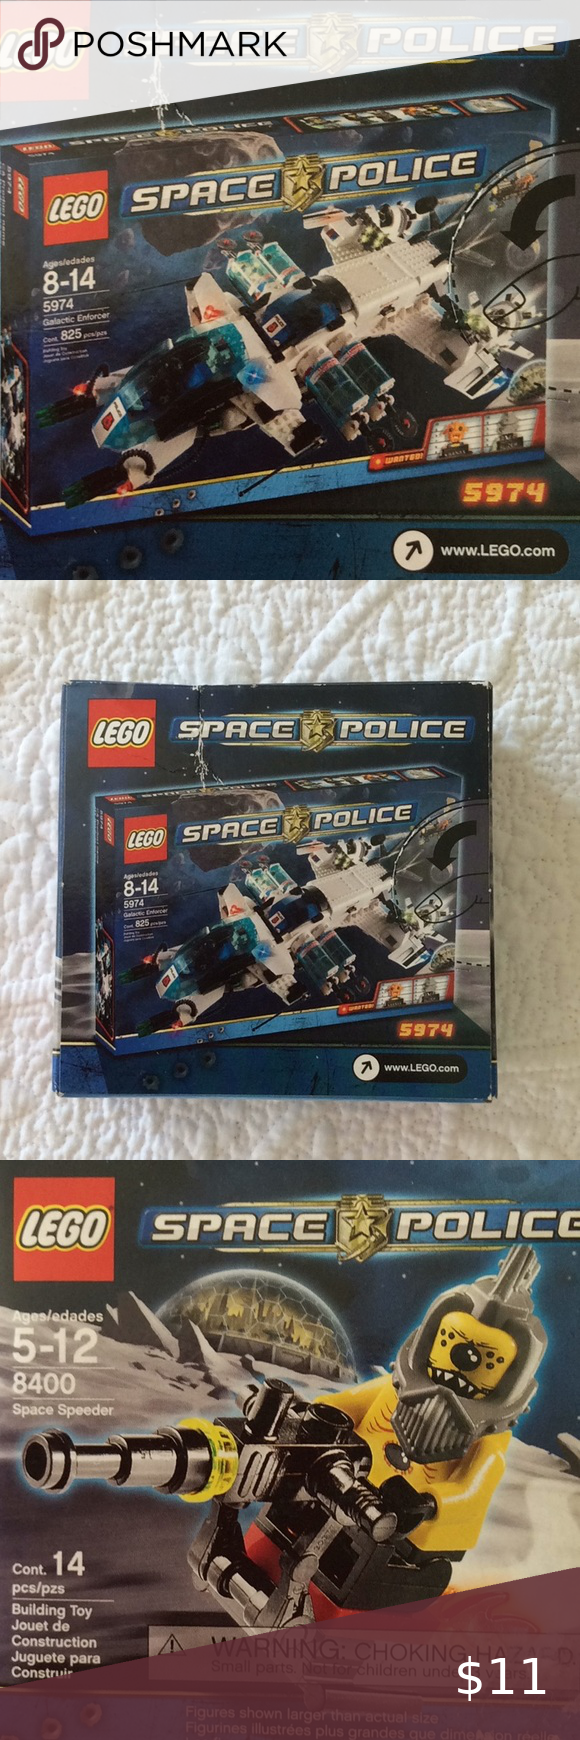 Lego Space Police 8400 Nib Lego Space Police Lego Space Lego For Kids [ 1740 x 580 Pixel ]